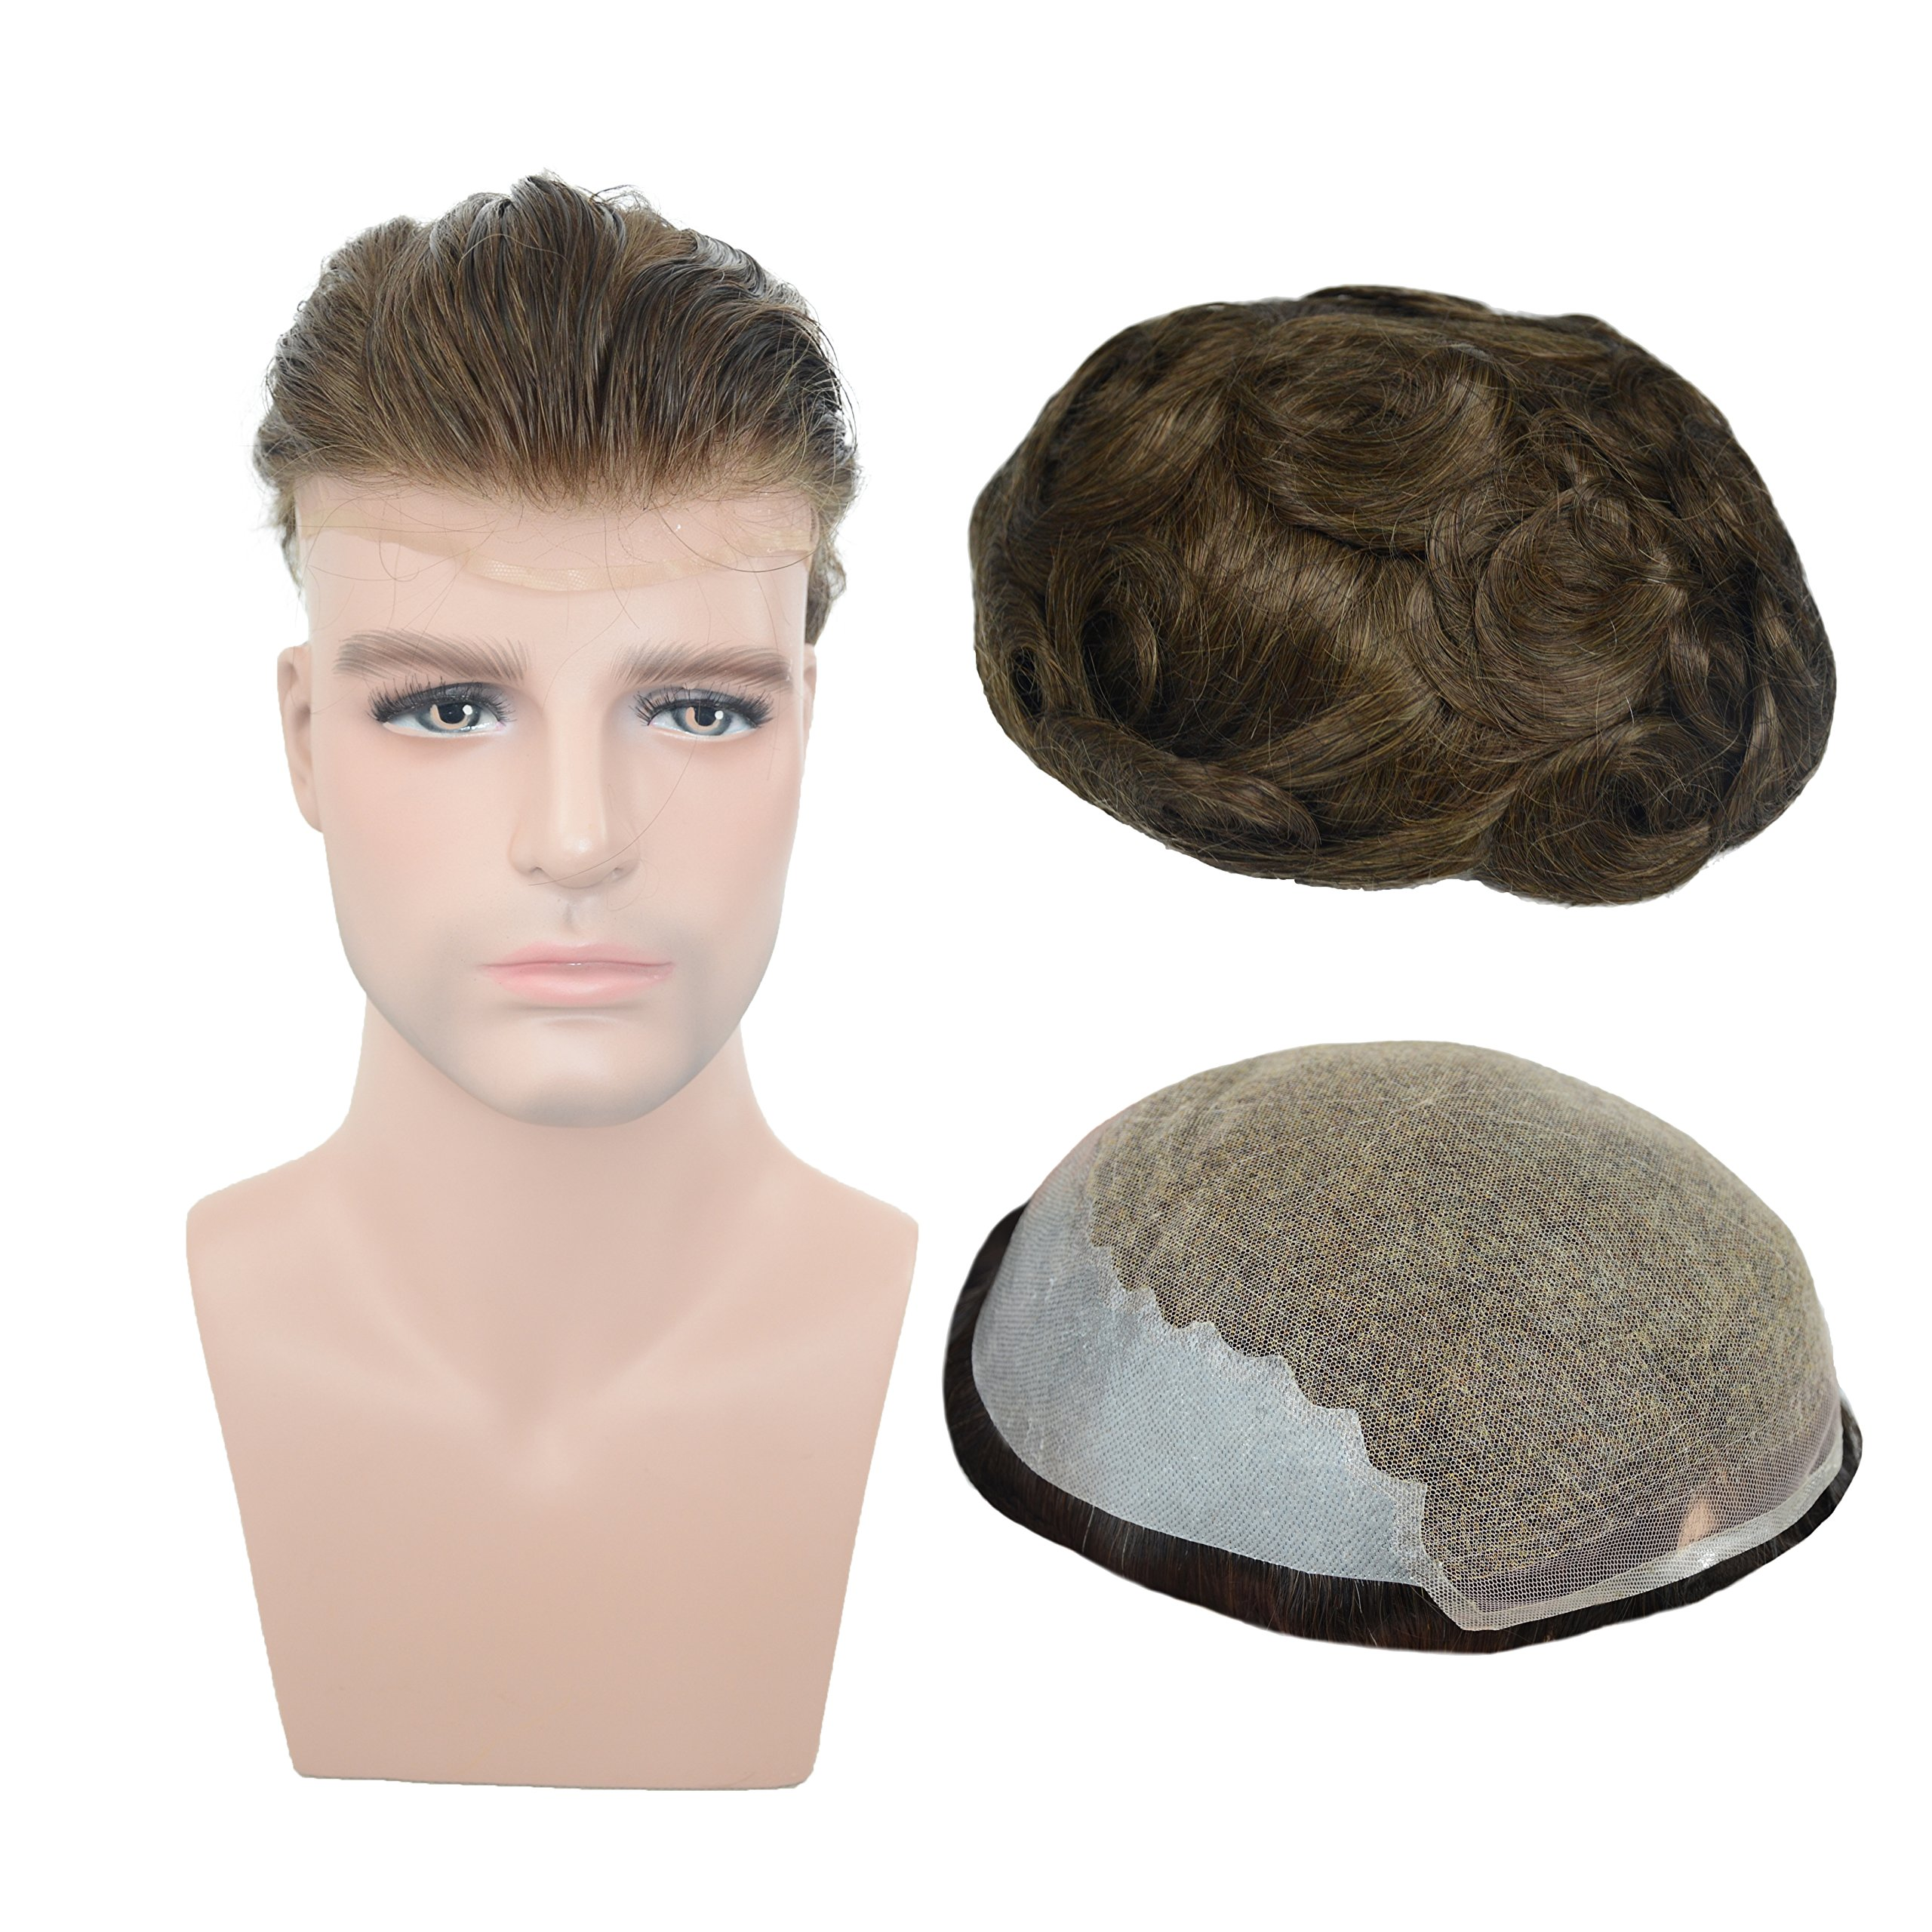 European Human hair Toupee For Men with 8x10 inch Soft French Lace Cap with 2inch clearly PU in Back, Veer Natural Wave Men's Hairpiece Replacement System Light Brown Color(#4)